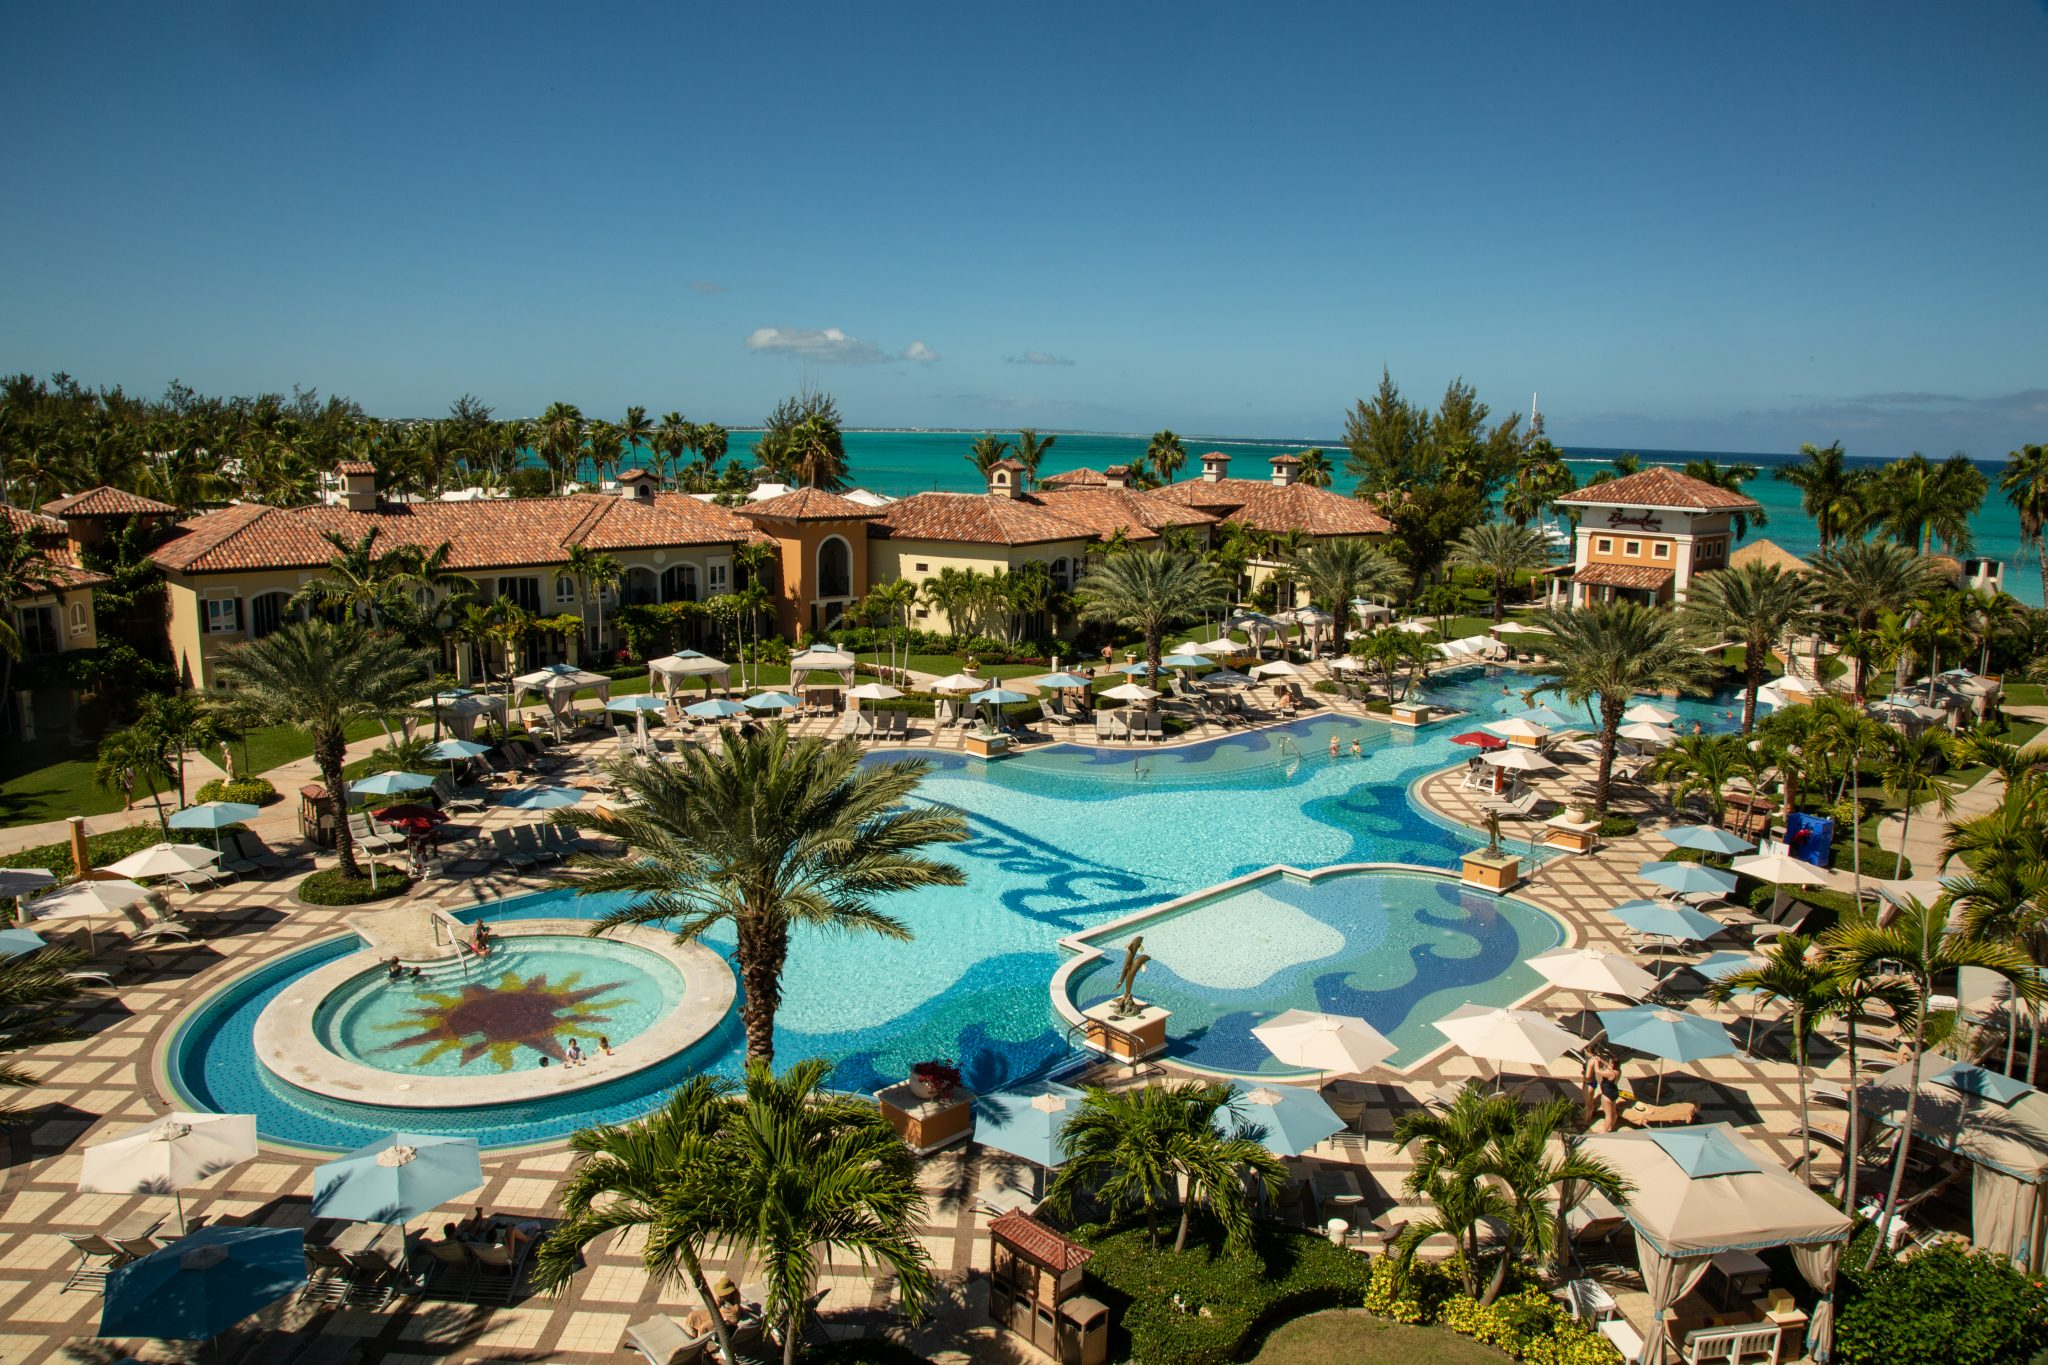 Honest Beaches Turks & Caicos Review: EVERYTHING You Need to Know Before You Book